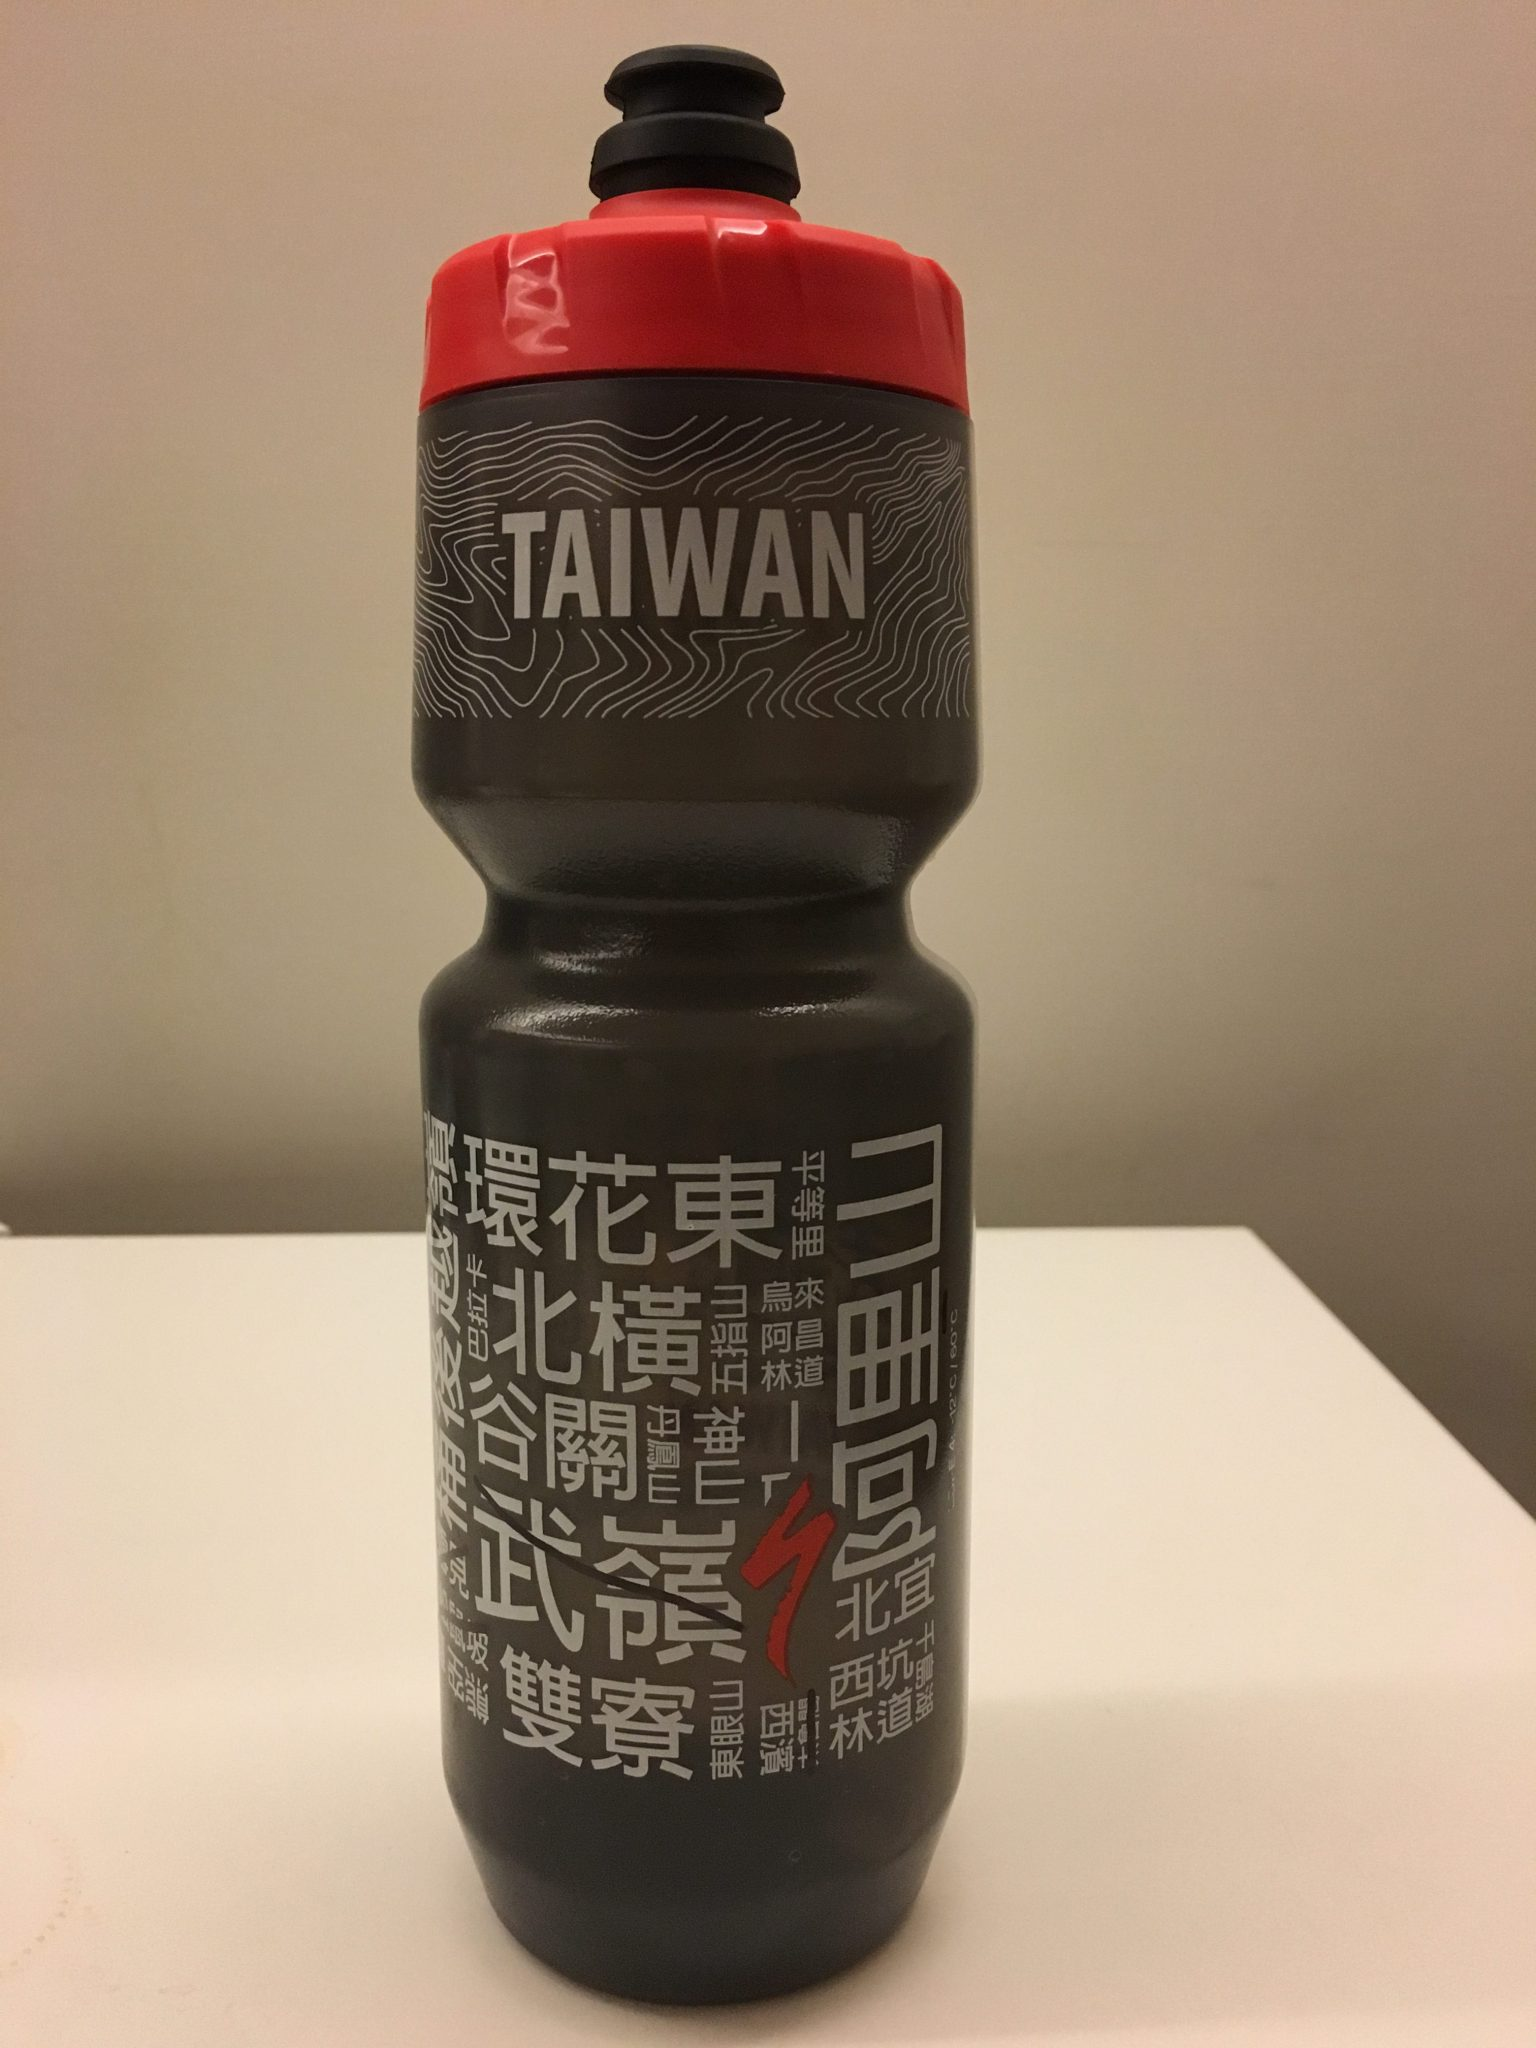 [Gotta Ride Them All!] Specialized Taiwan Route Word Cloud Bottle 台灣騎車路線字雲水壺